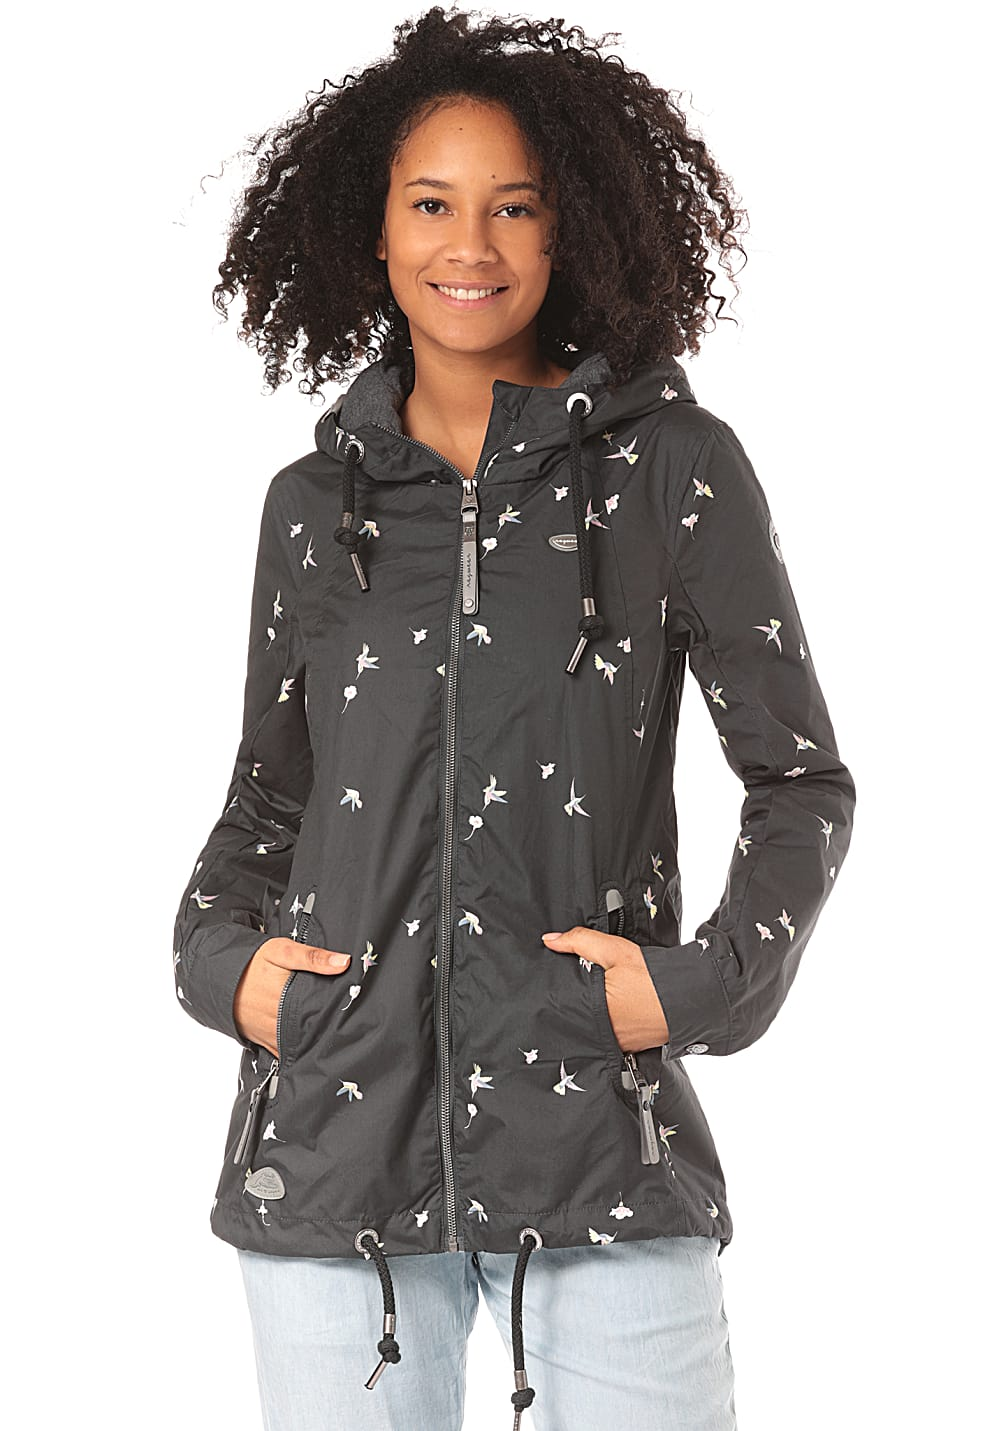 Jacken - ragwear Zuzka Jacke für Damen Grau  - Onlineshop Planet Sports